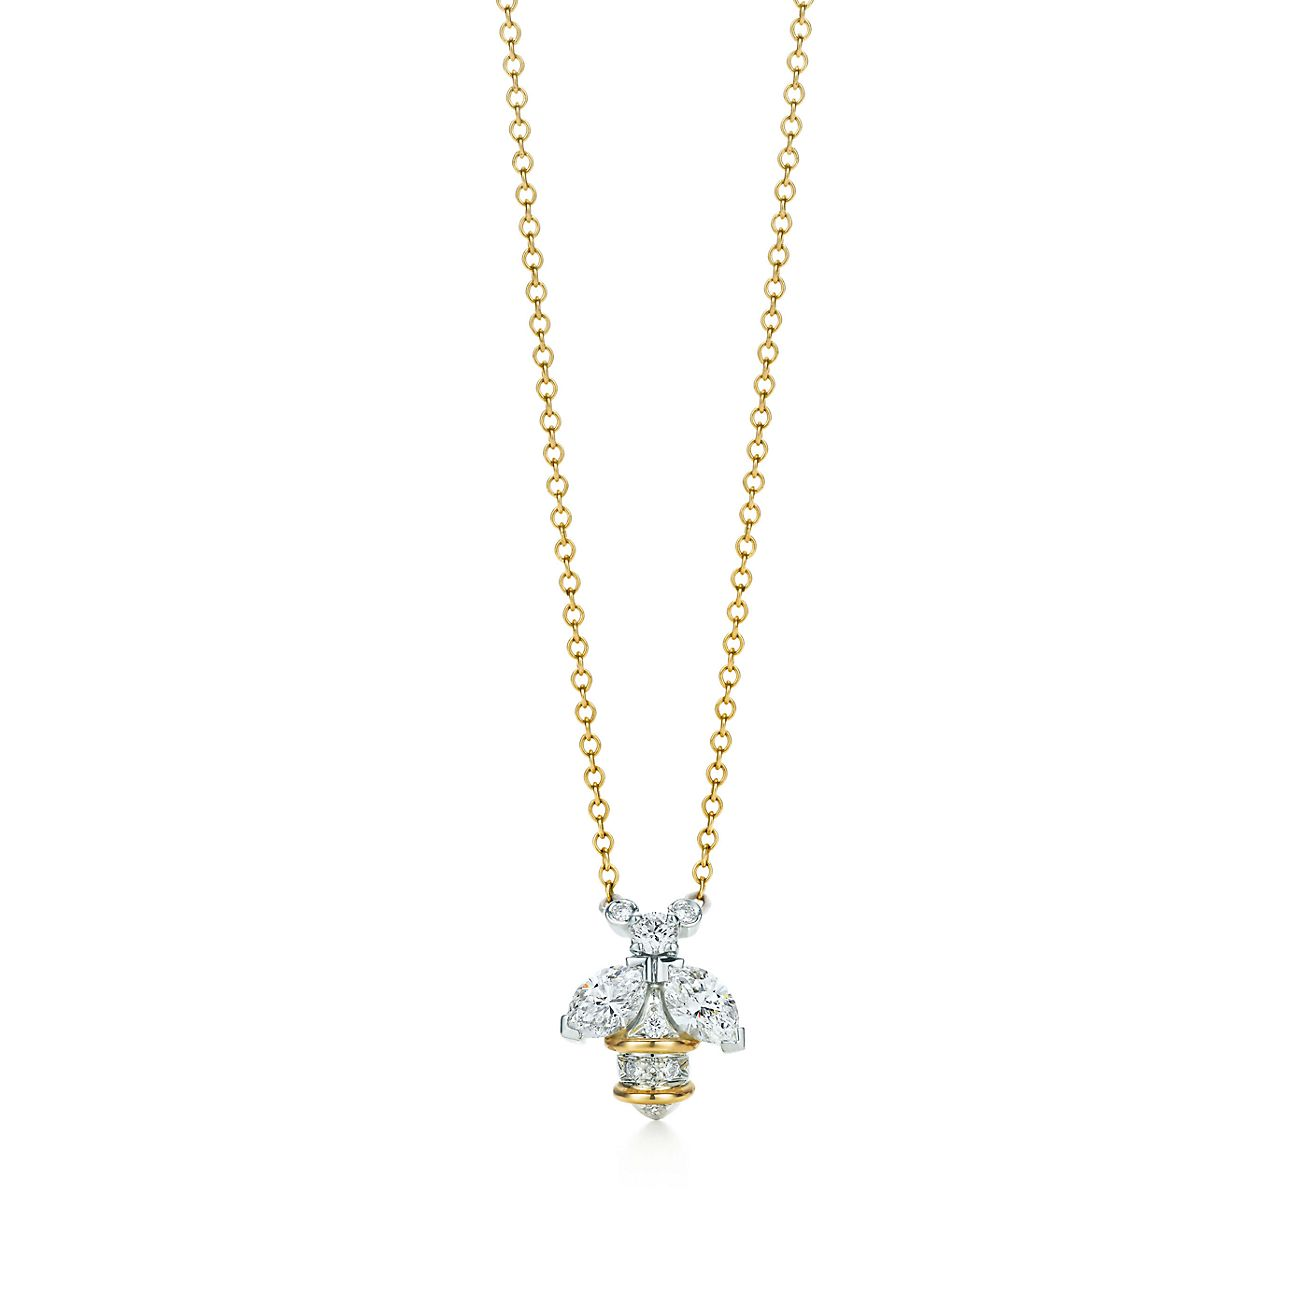 Tiffany co schlumberger bee pendant in 18k gold and platinum schlumbergerbee pendant aloadofball Images